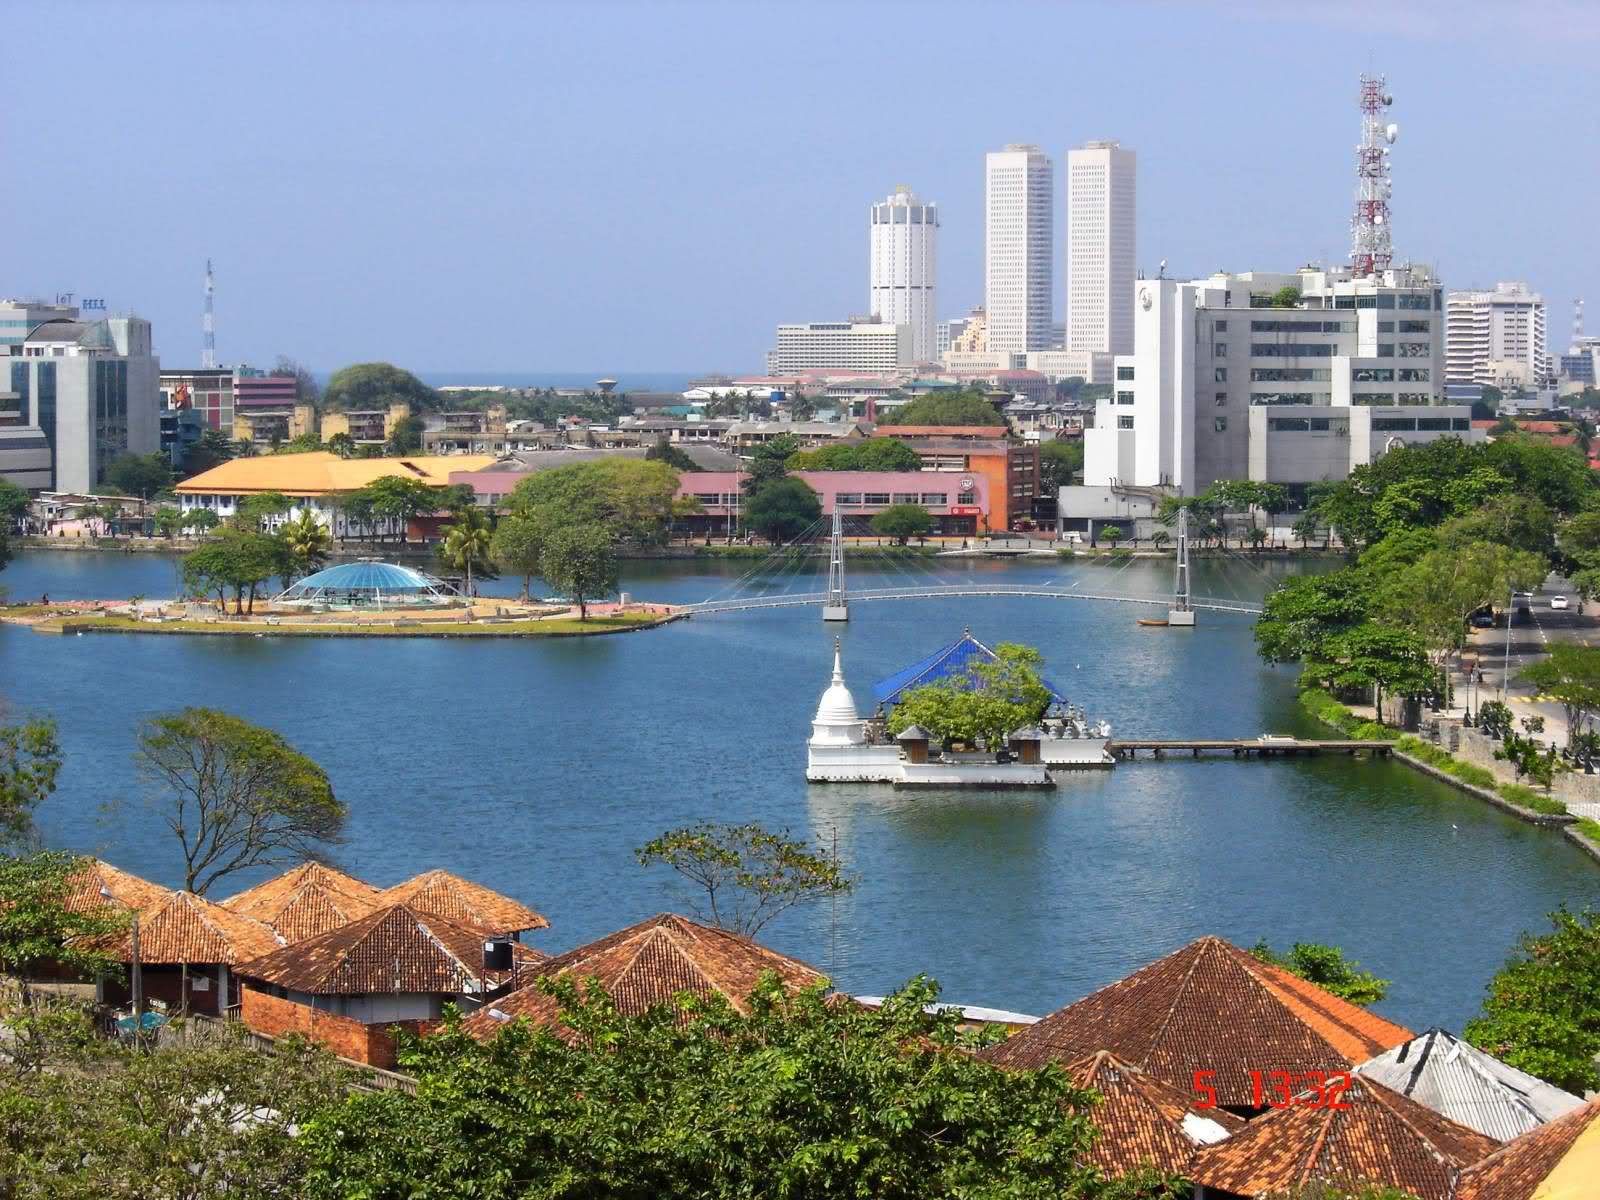 colombo_sri_lanka (1)